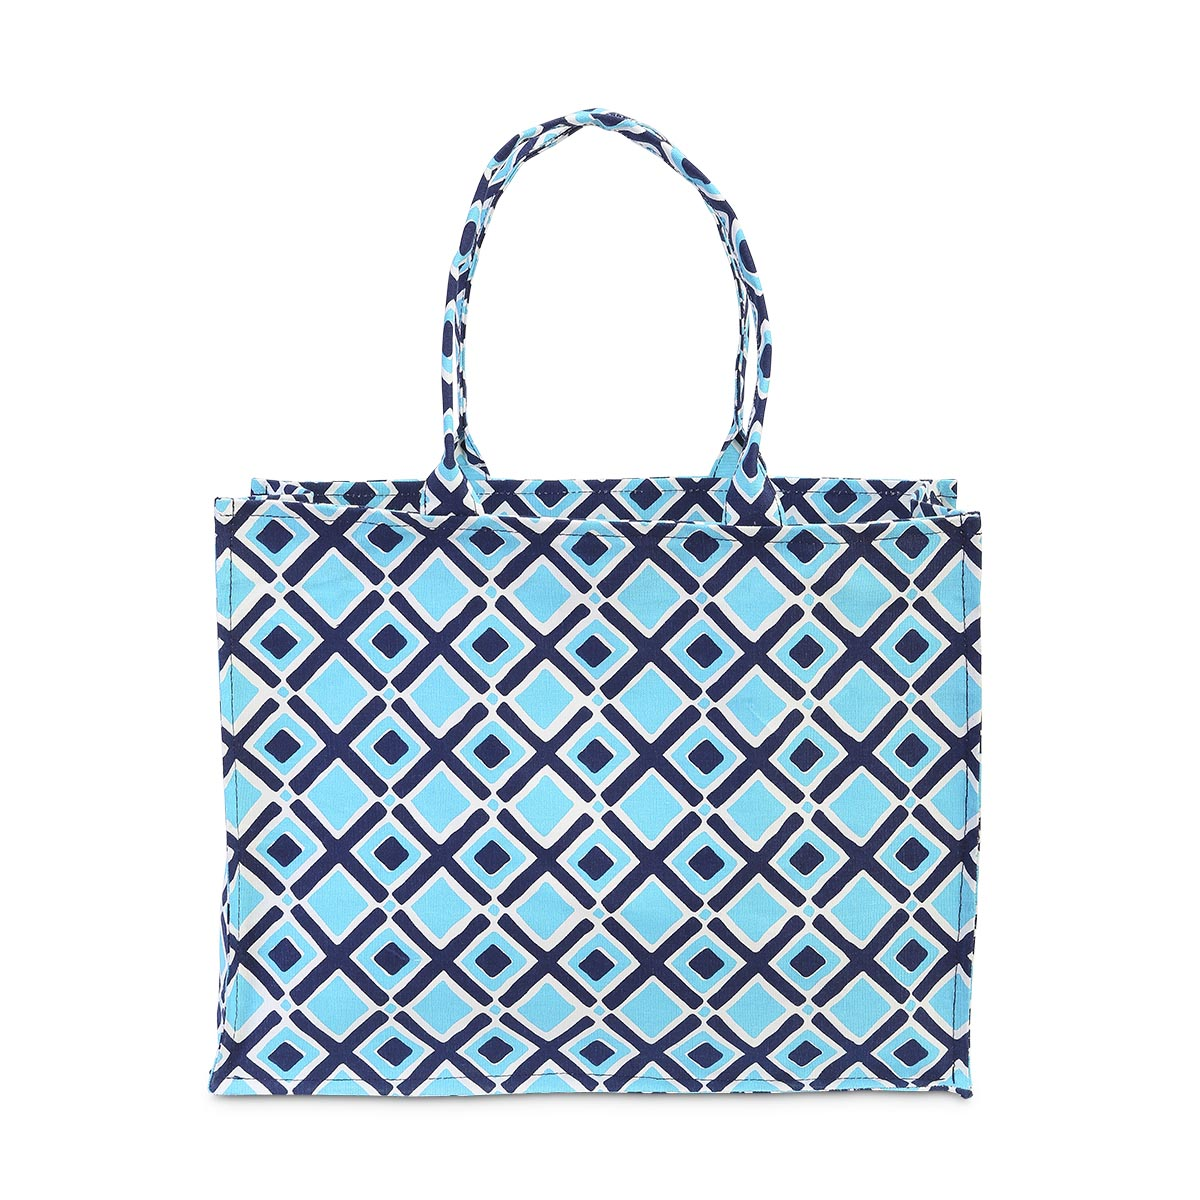 times square navy/turq canvas tote